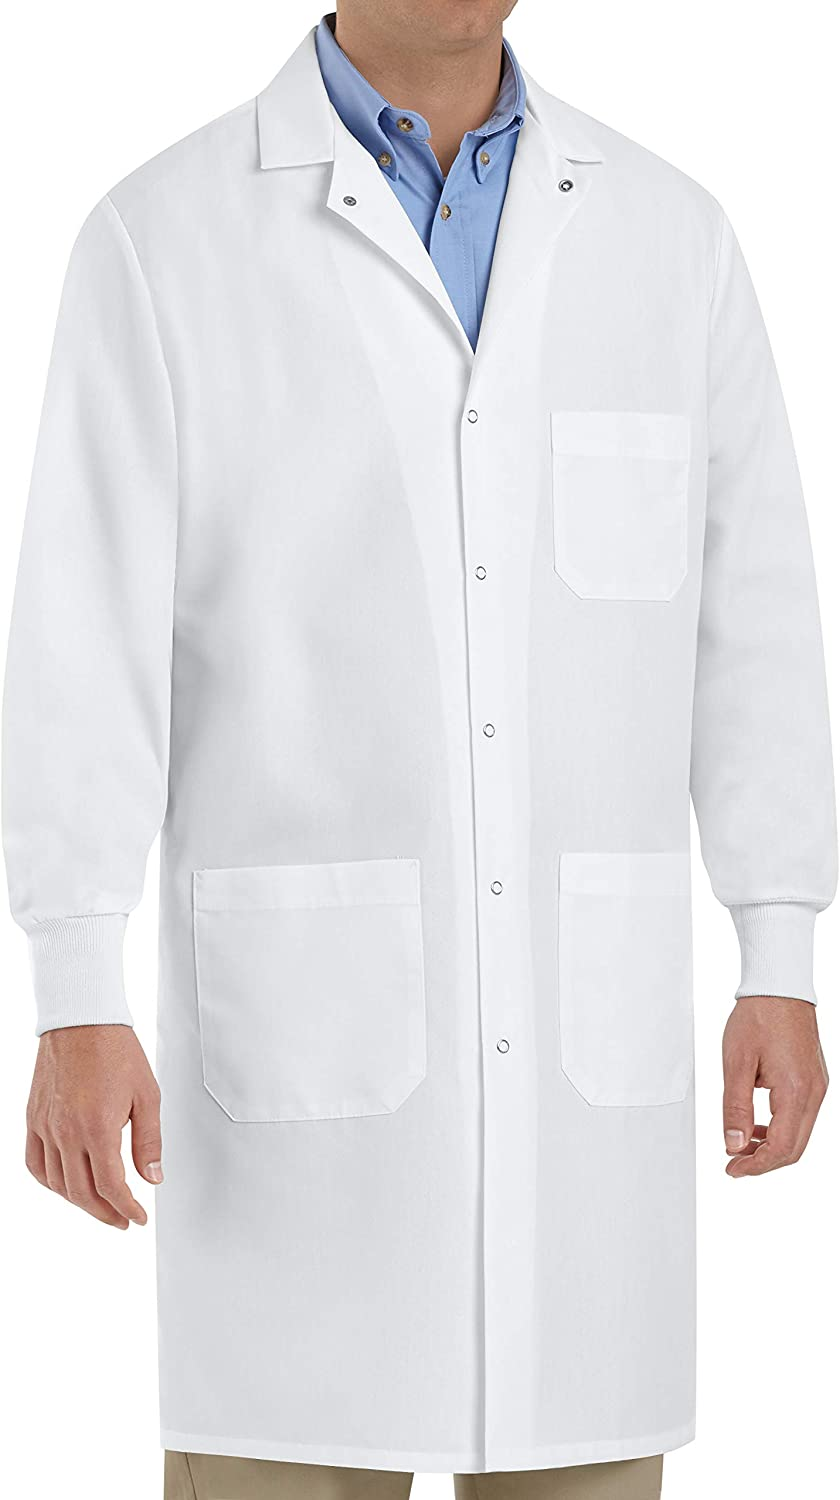 Red Kap Unisex Specialized Cuffed Lab Coat with 3 Front Pockets